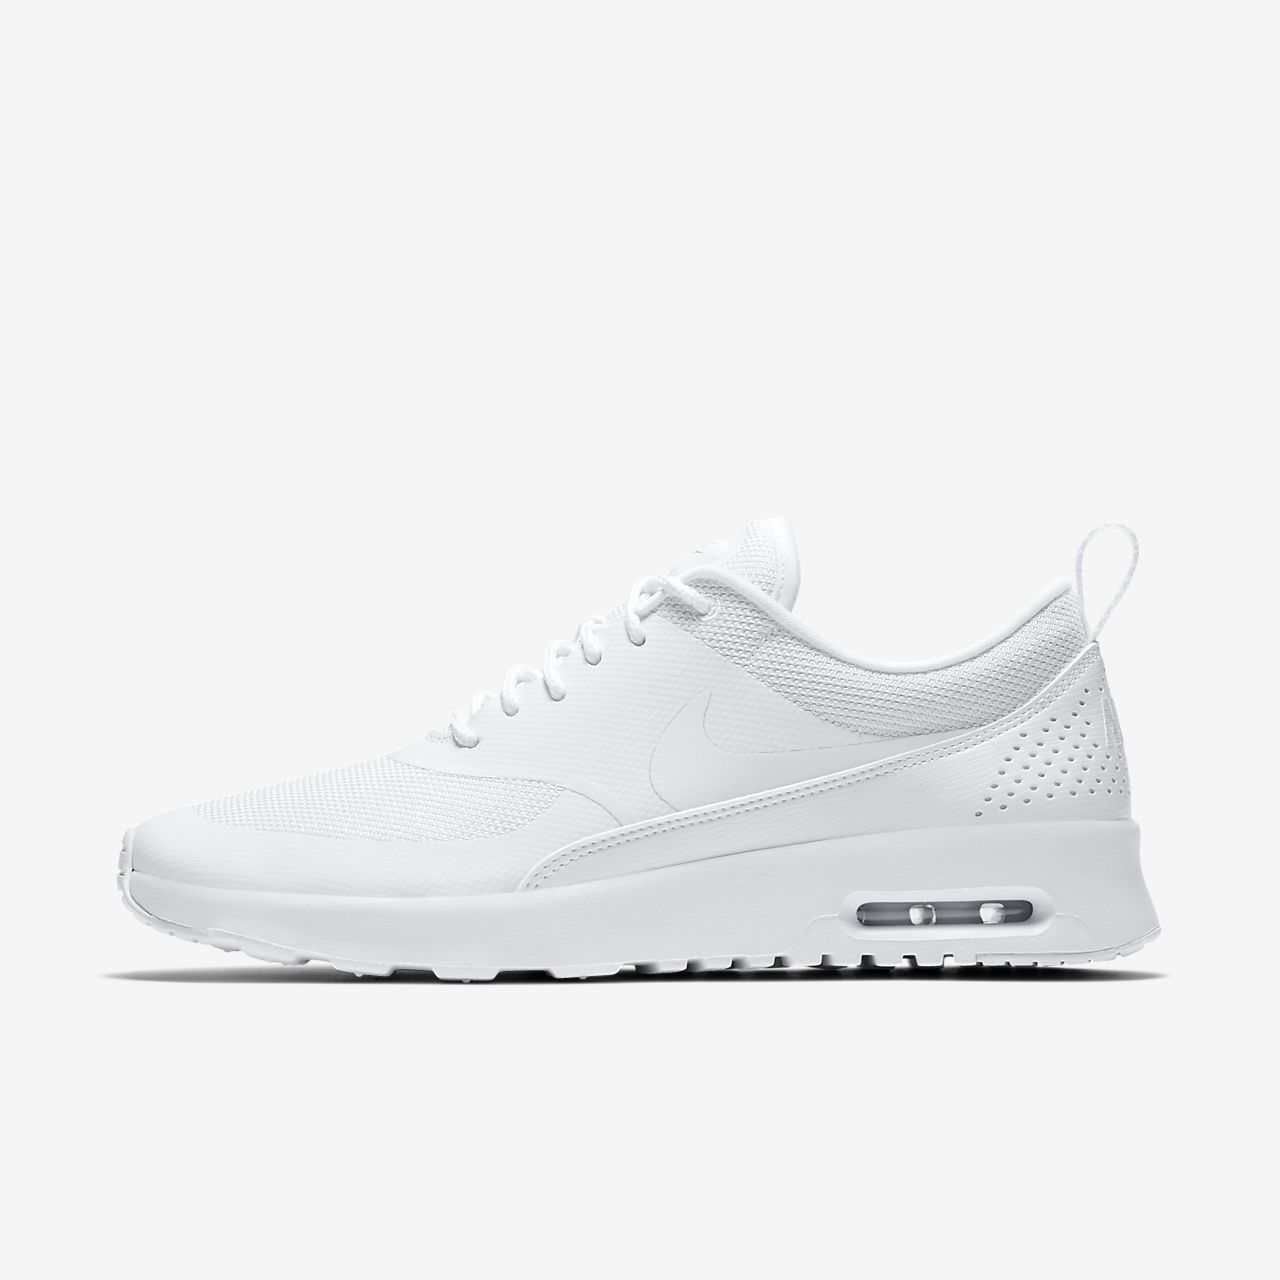 ... Nike Air Max Thea Women's Shoe